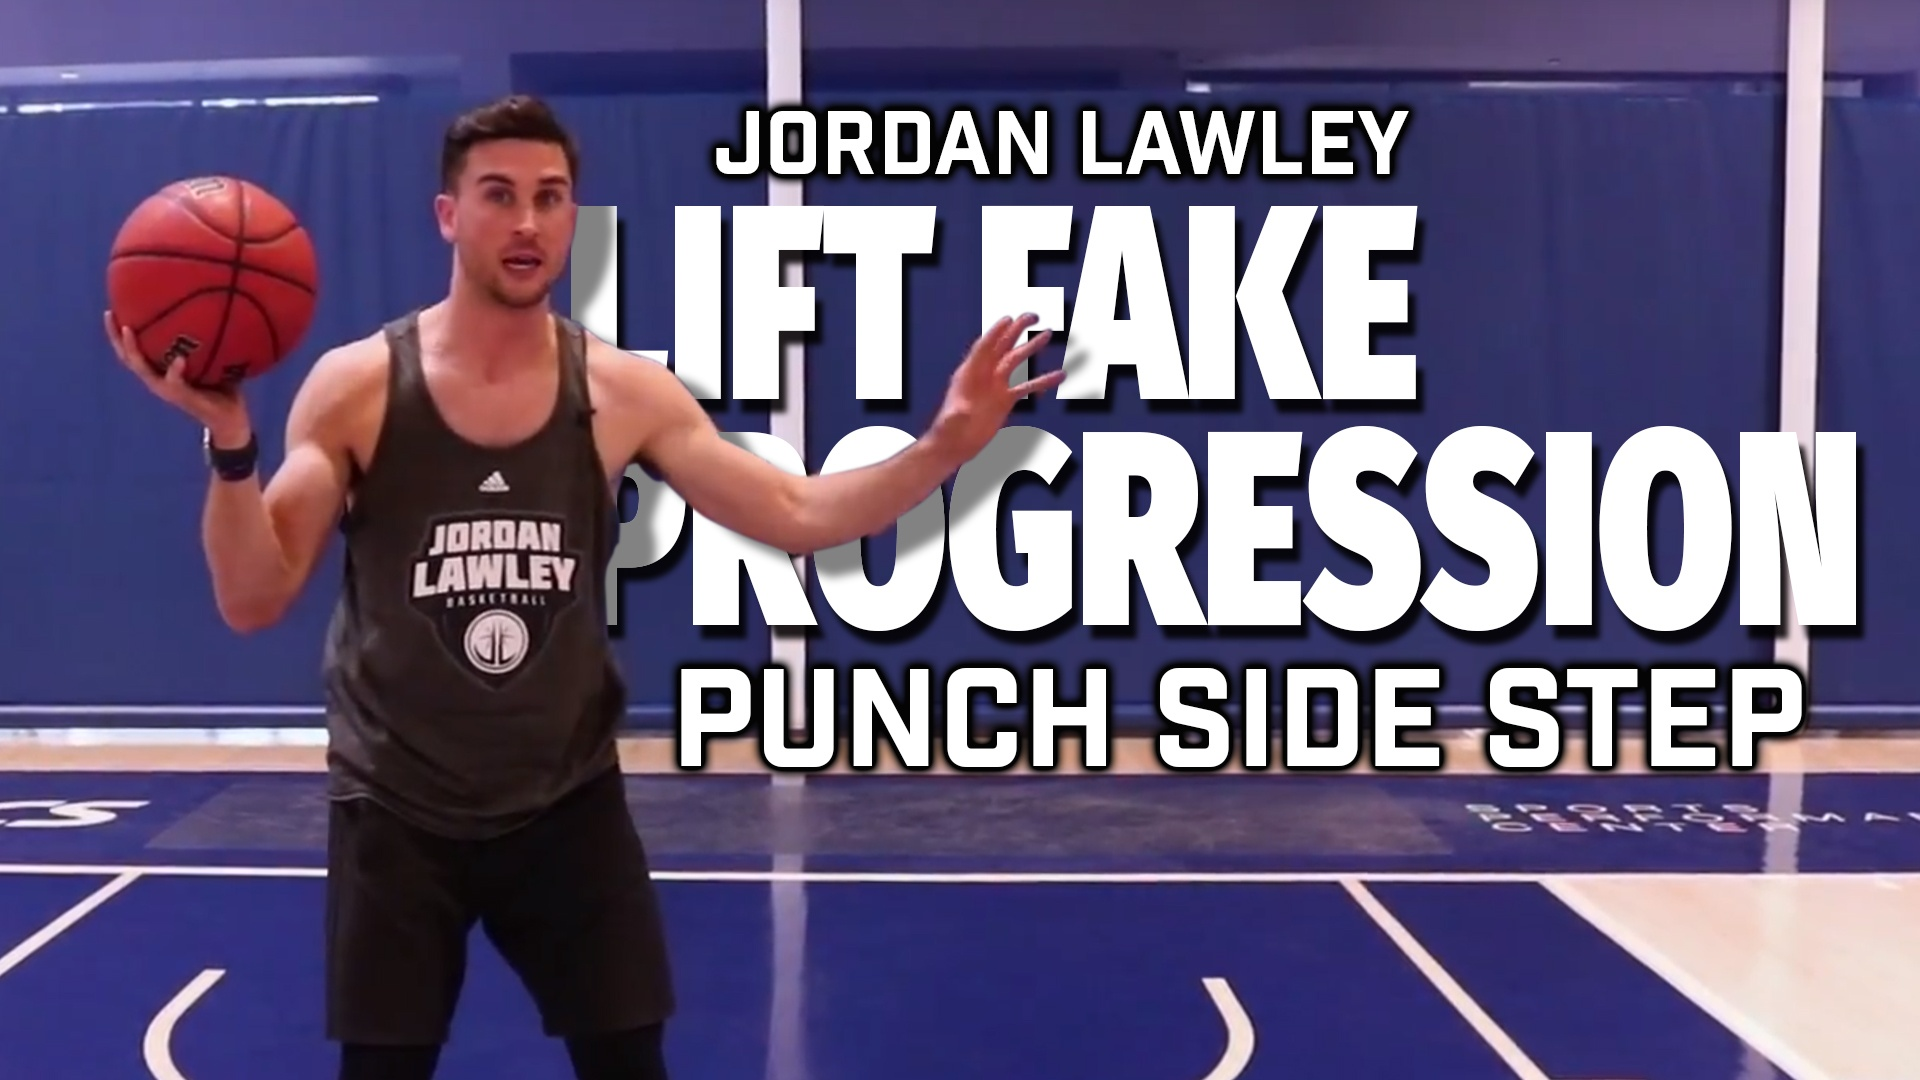 Basketball Drills: Lift Fake Punch Side Step with Jordan Lawley